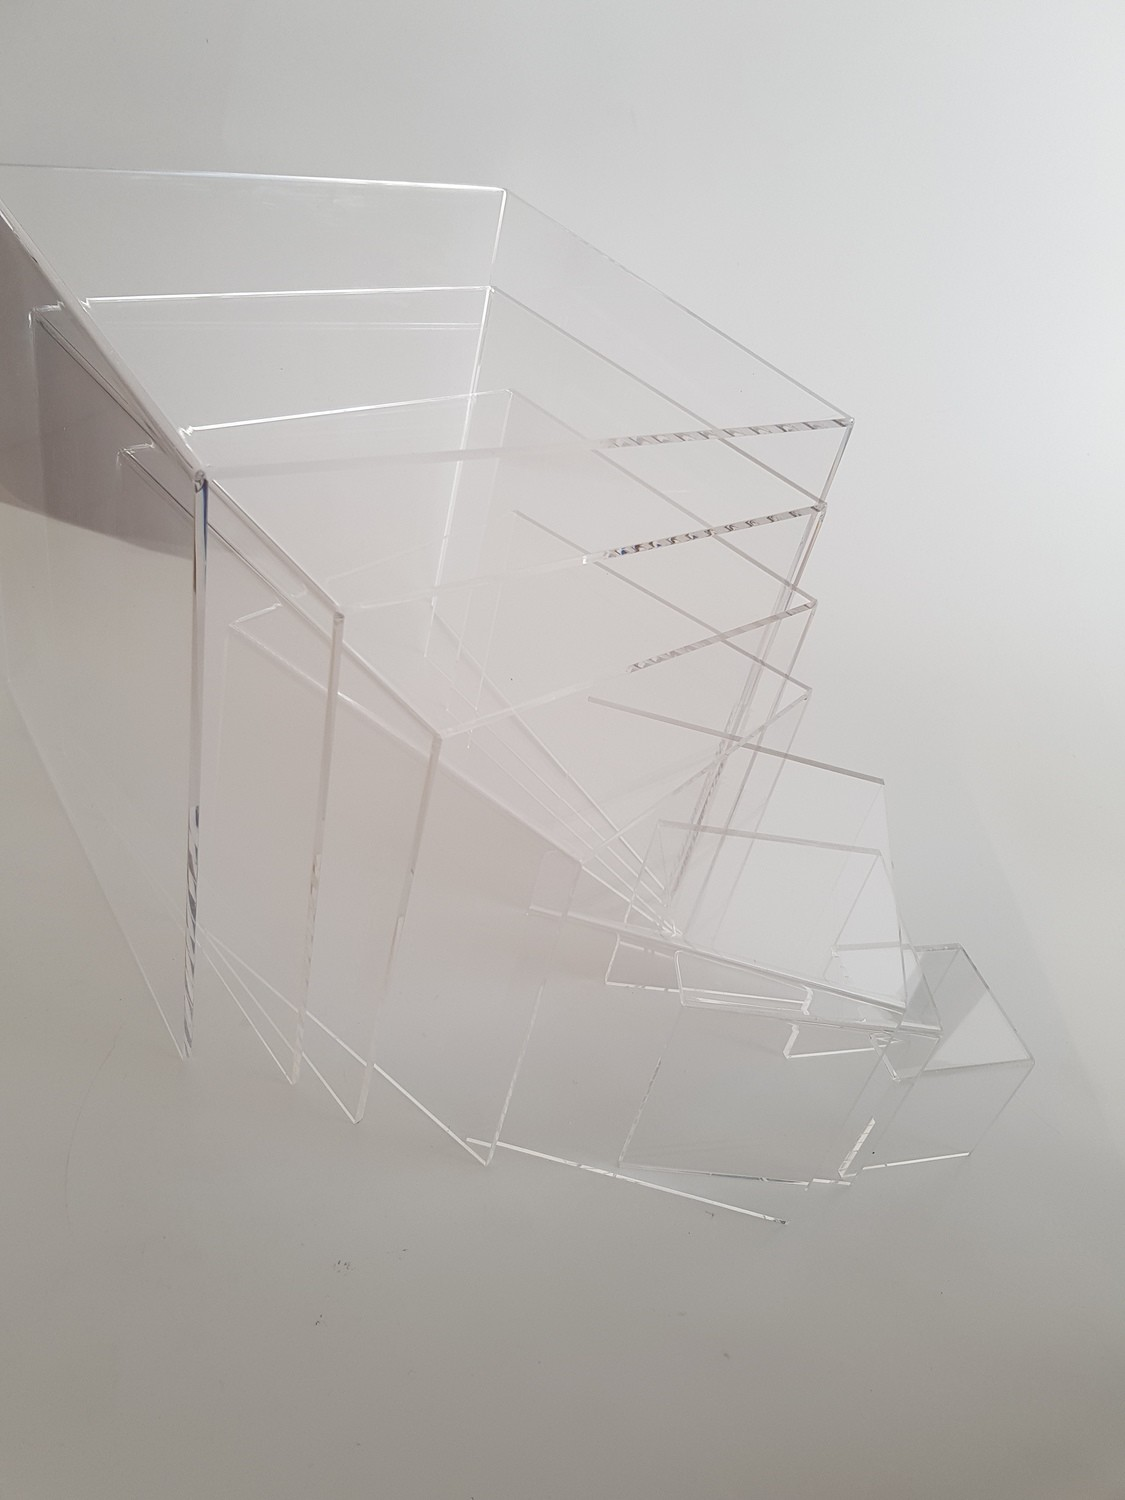 7 Piece Acrylic Bridge Riser Set